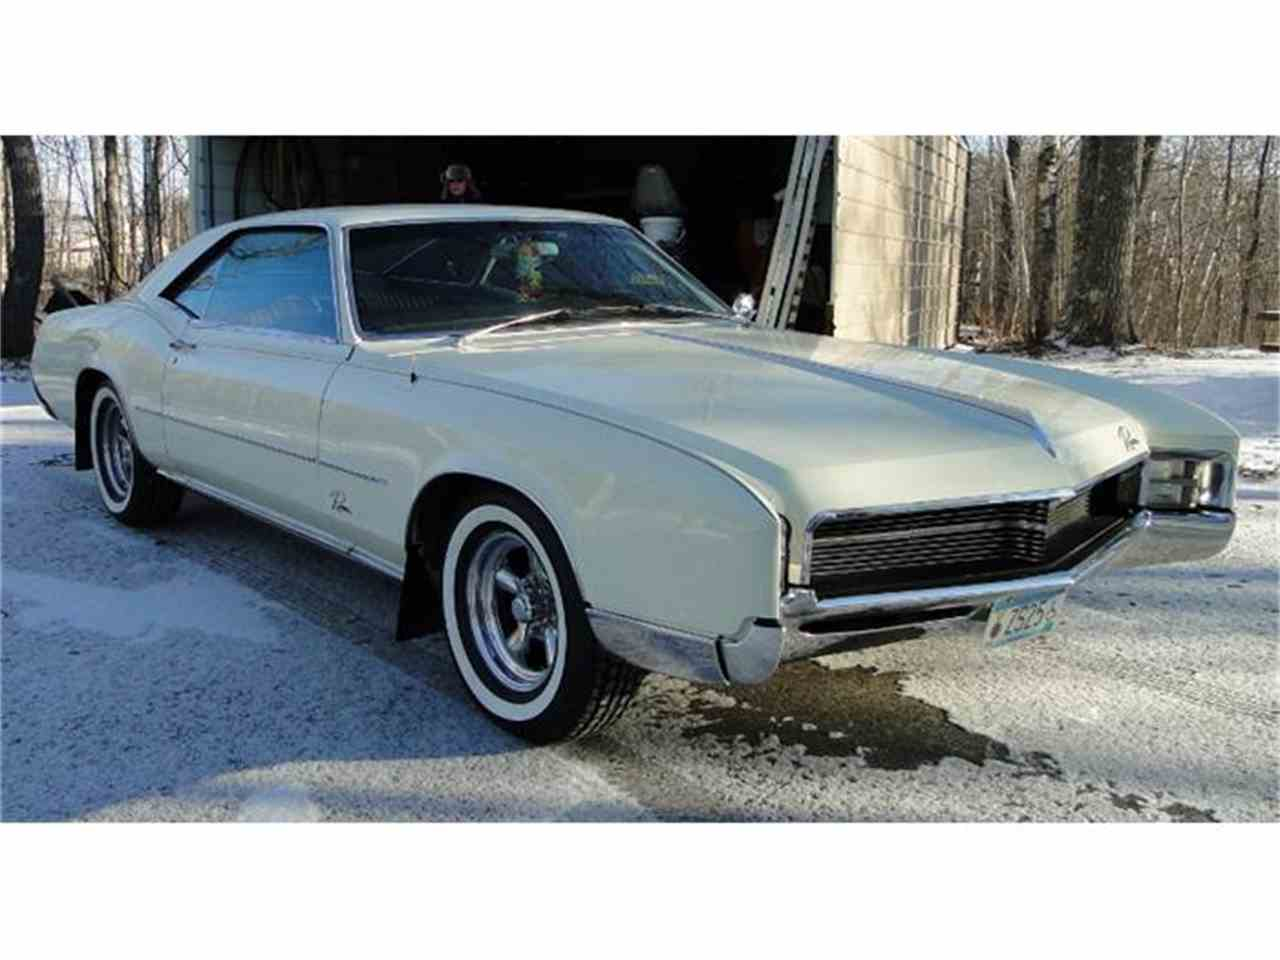 Amazing 1967 Buick Riviera Pictures & Backgrounds